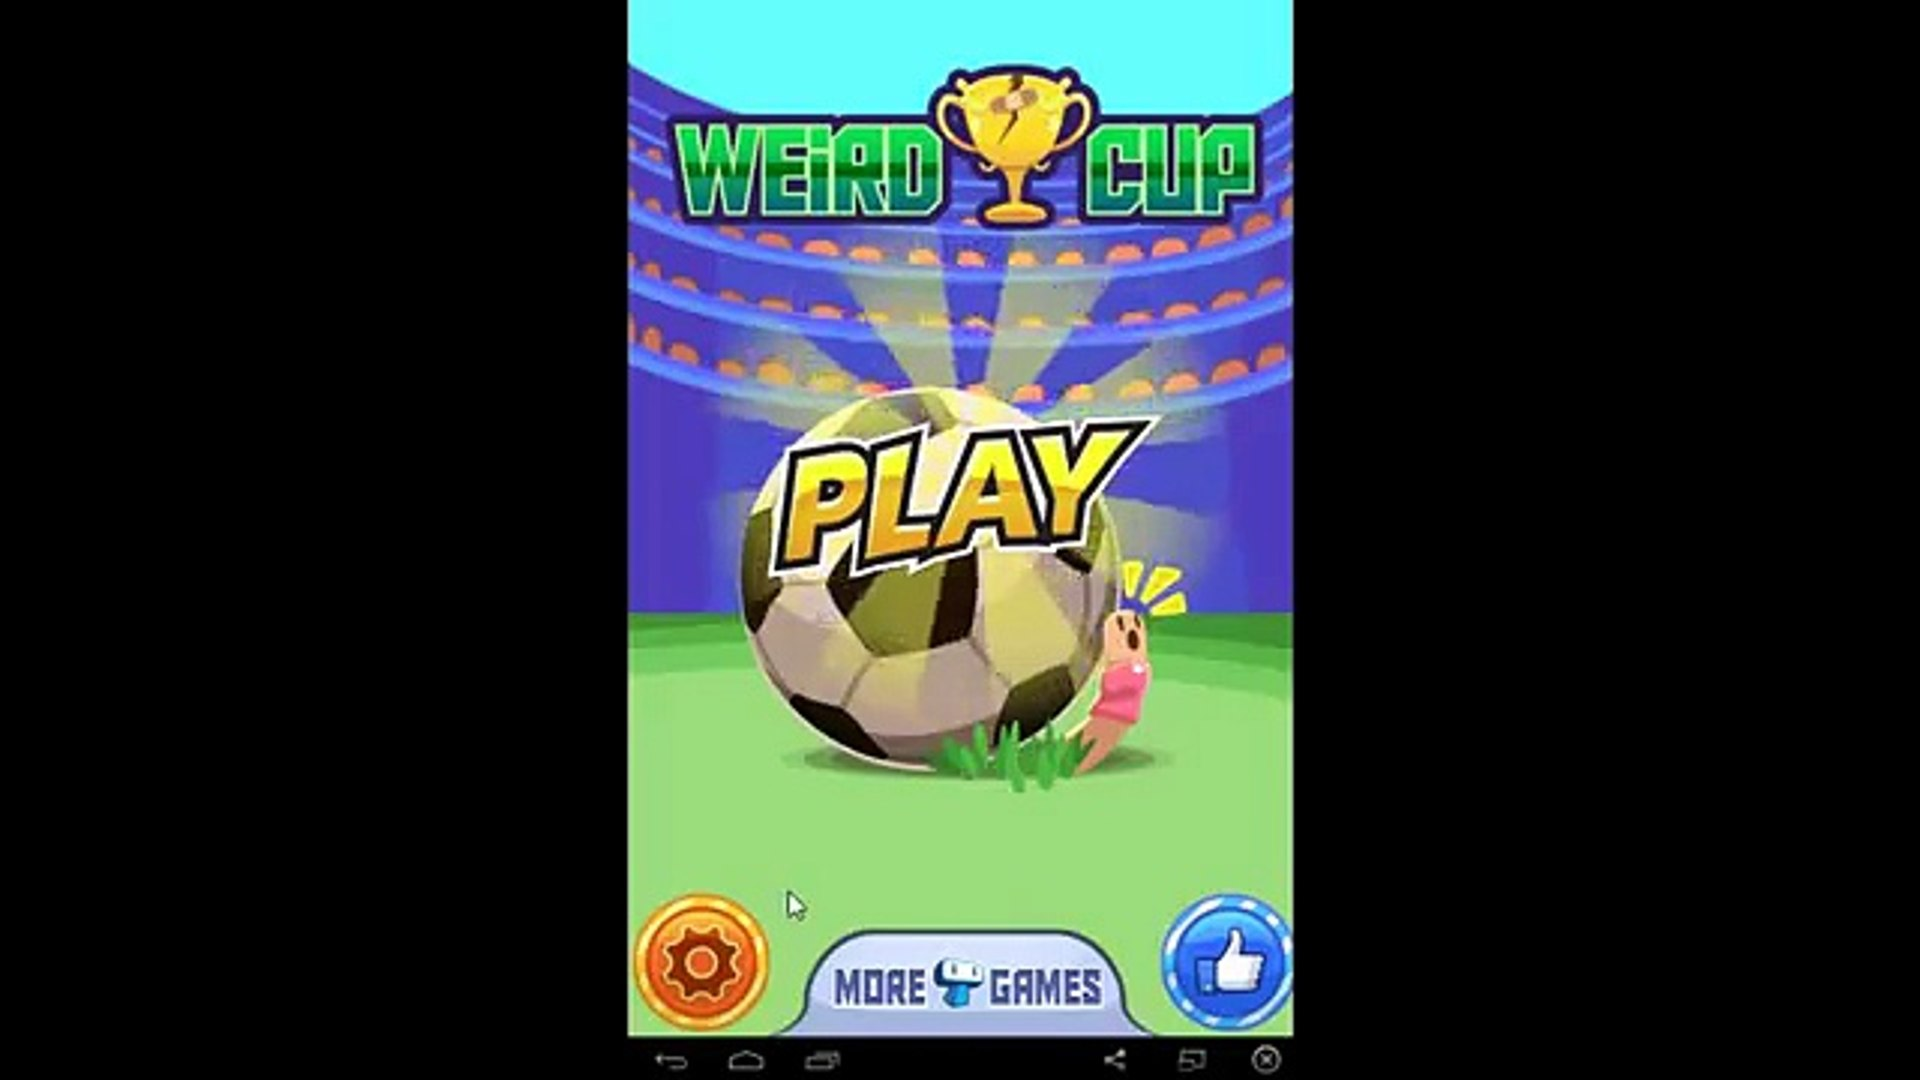 Weird Cup - Мини игры в футбол - for Android and iOS GamePlay